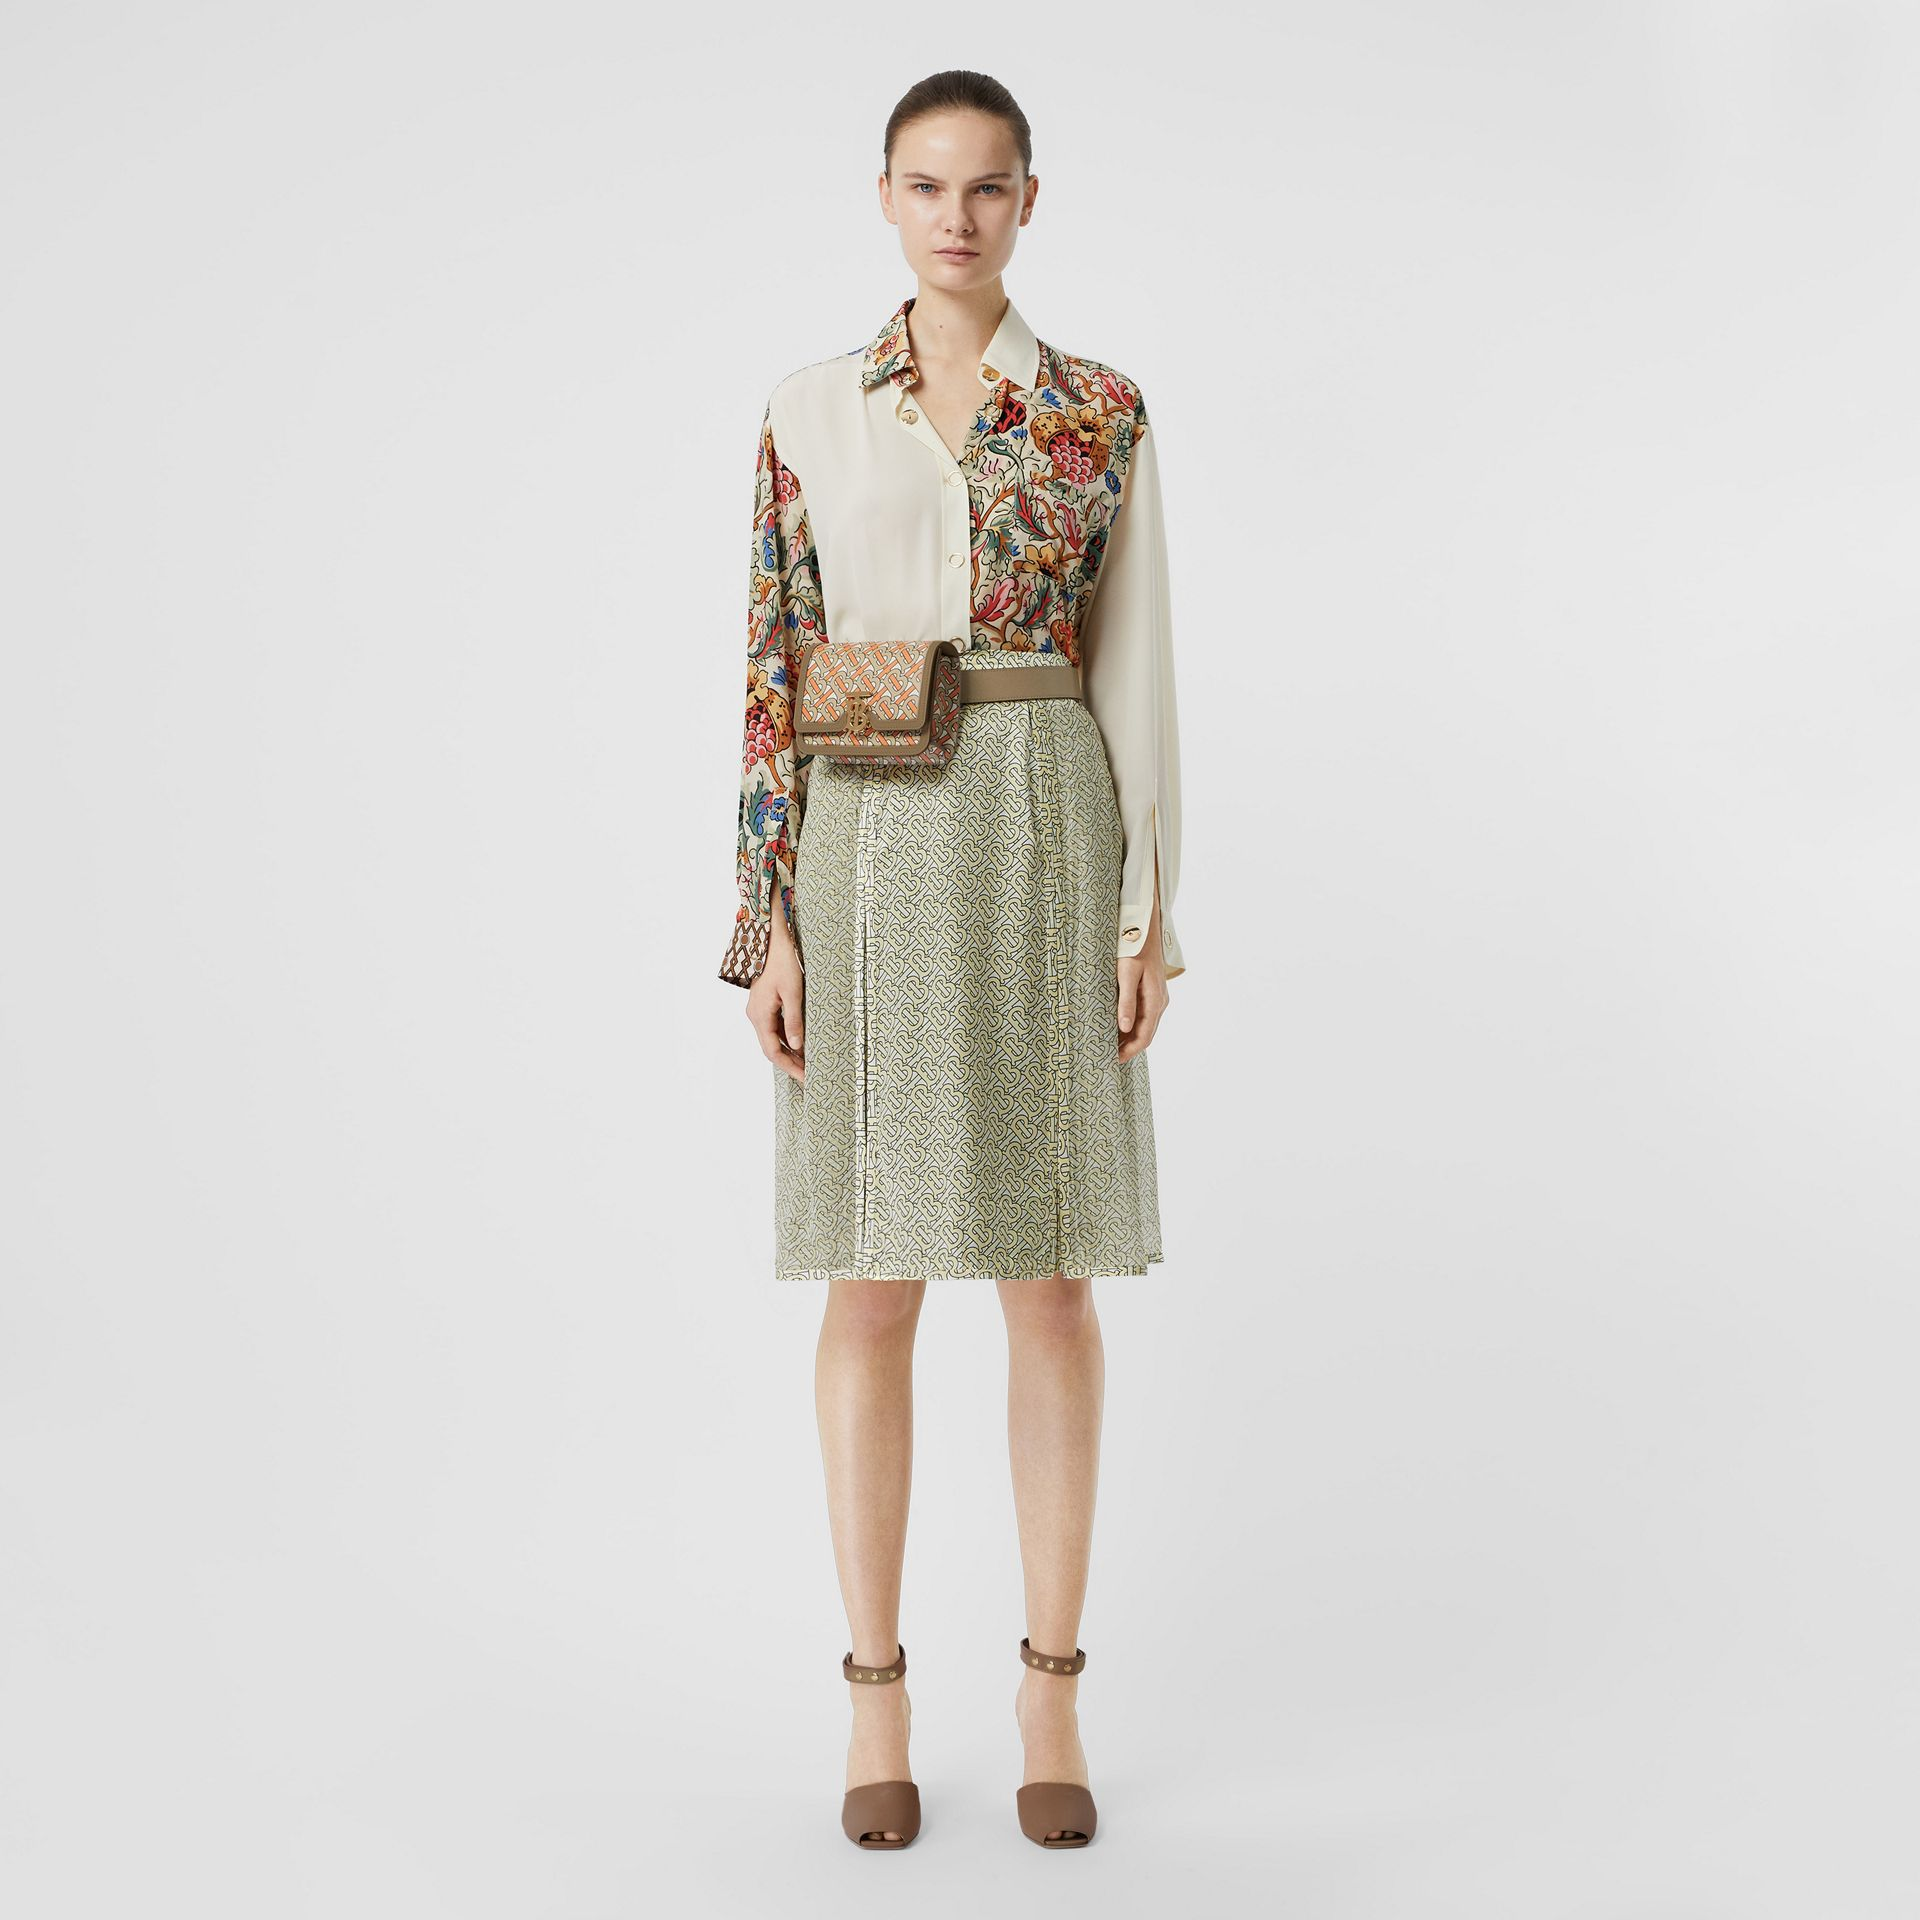 Floral Print Panel Silk Shirt in Vanilla - Women | Burberry Singapore - gallery image 5